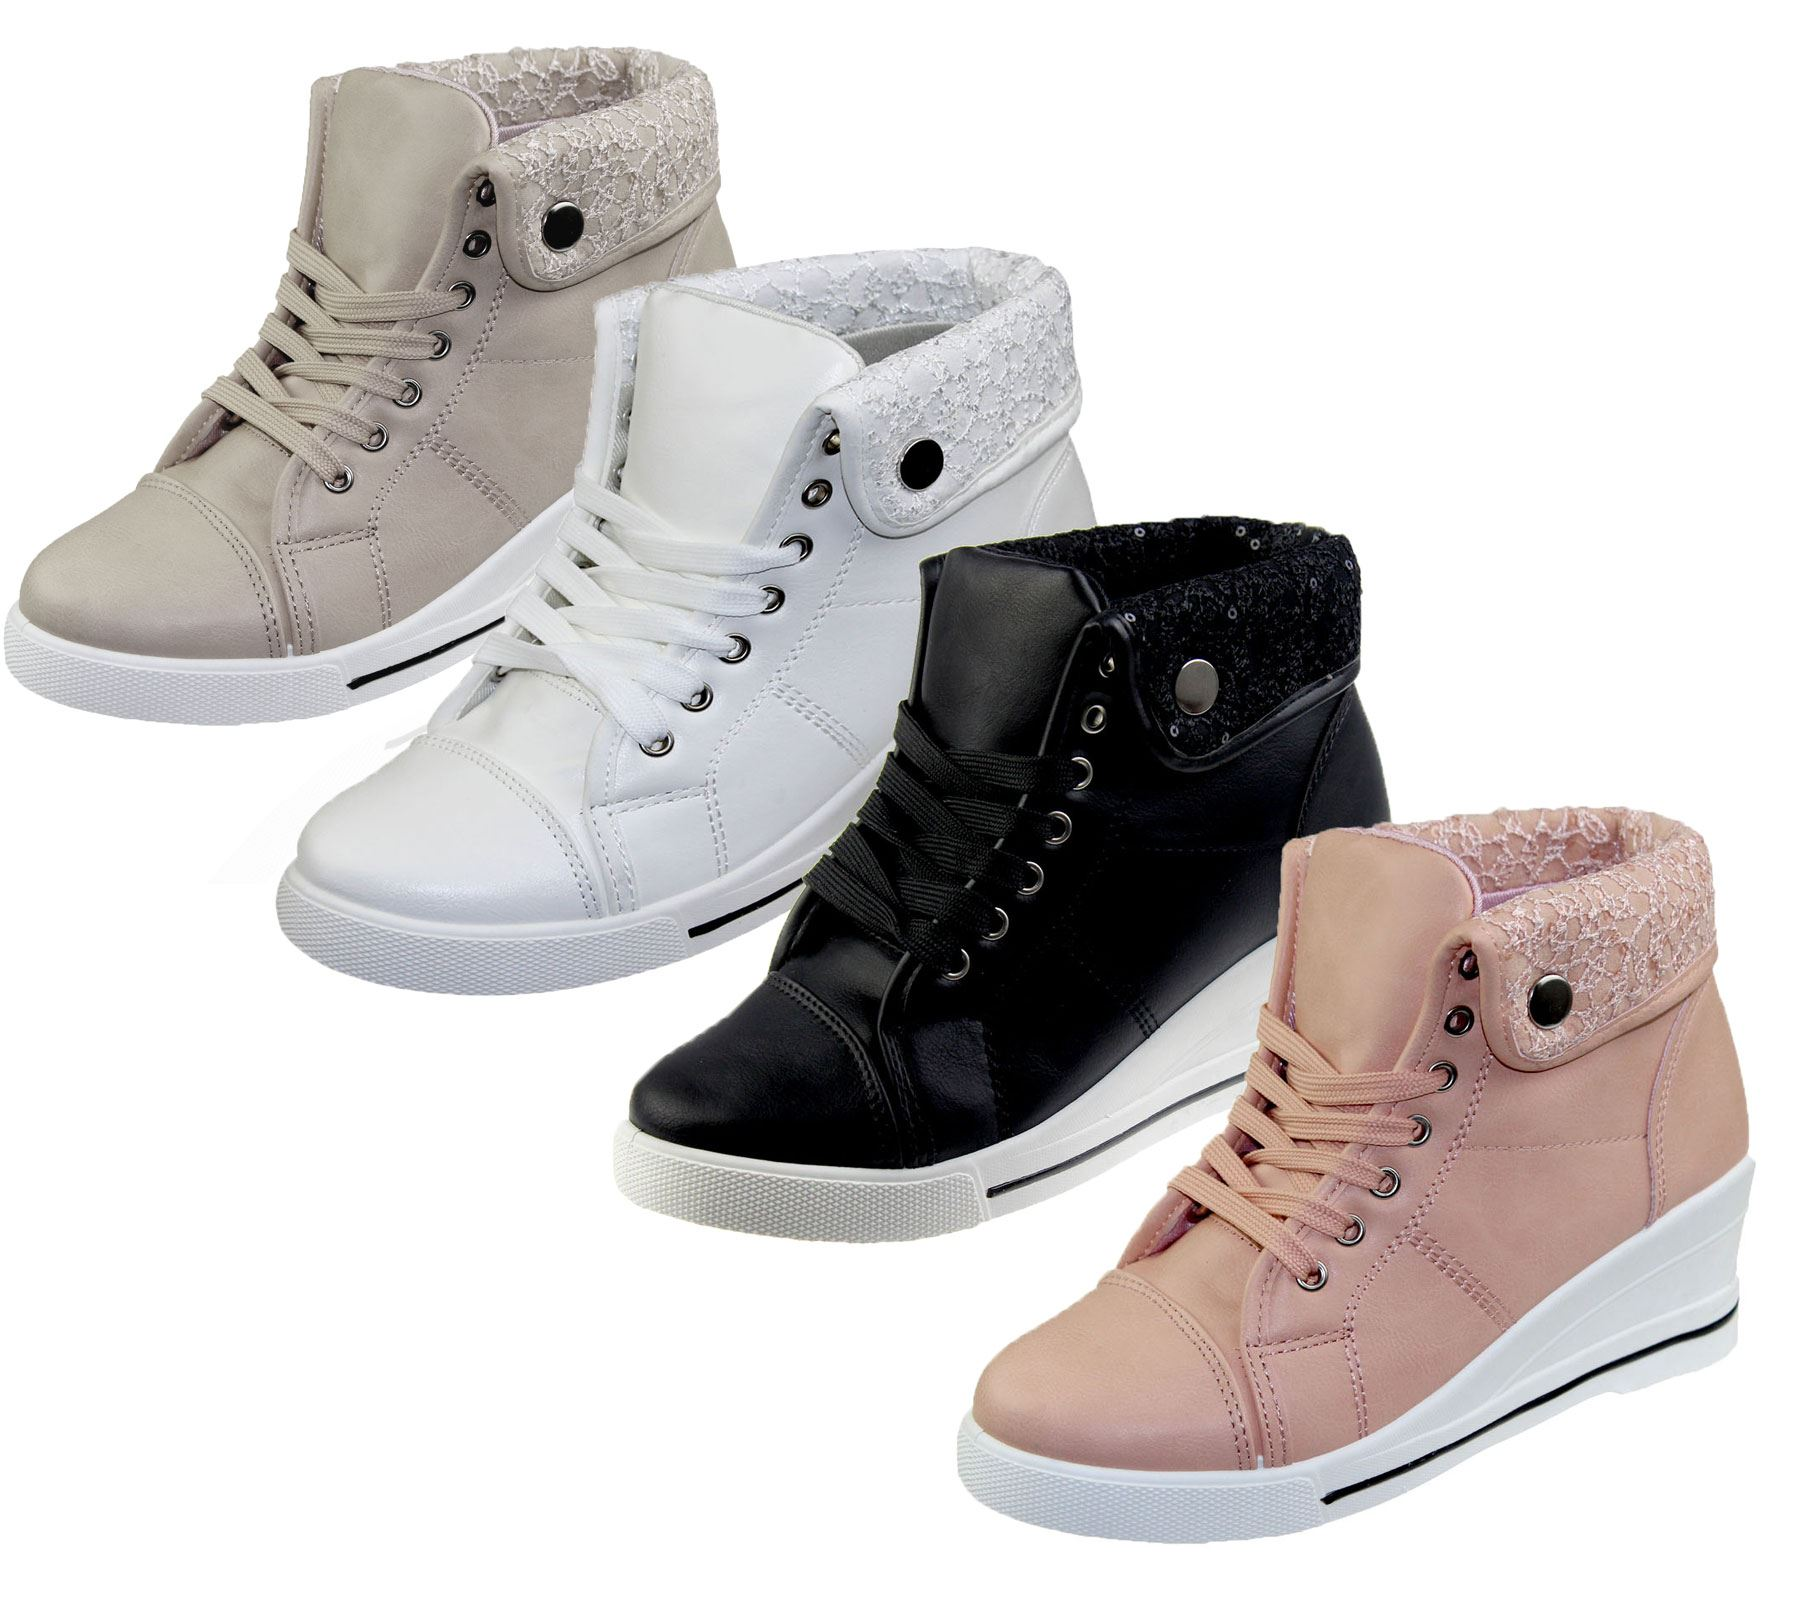 WOMENS WEDGE HEEL FAUX LEATHER HIGH TOP BOOTS LADIES ANKLE ...